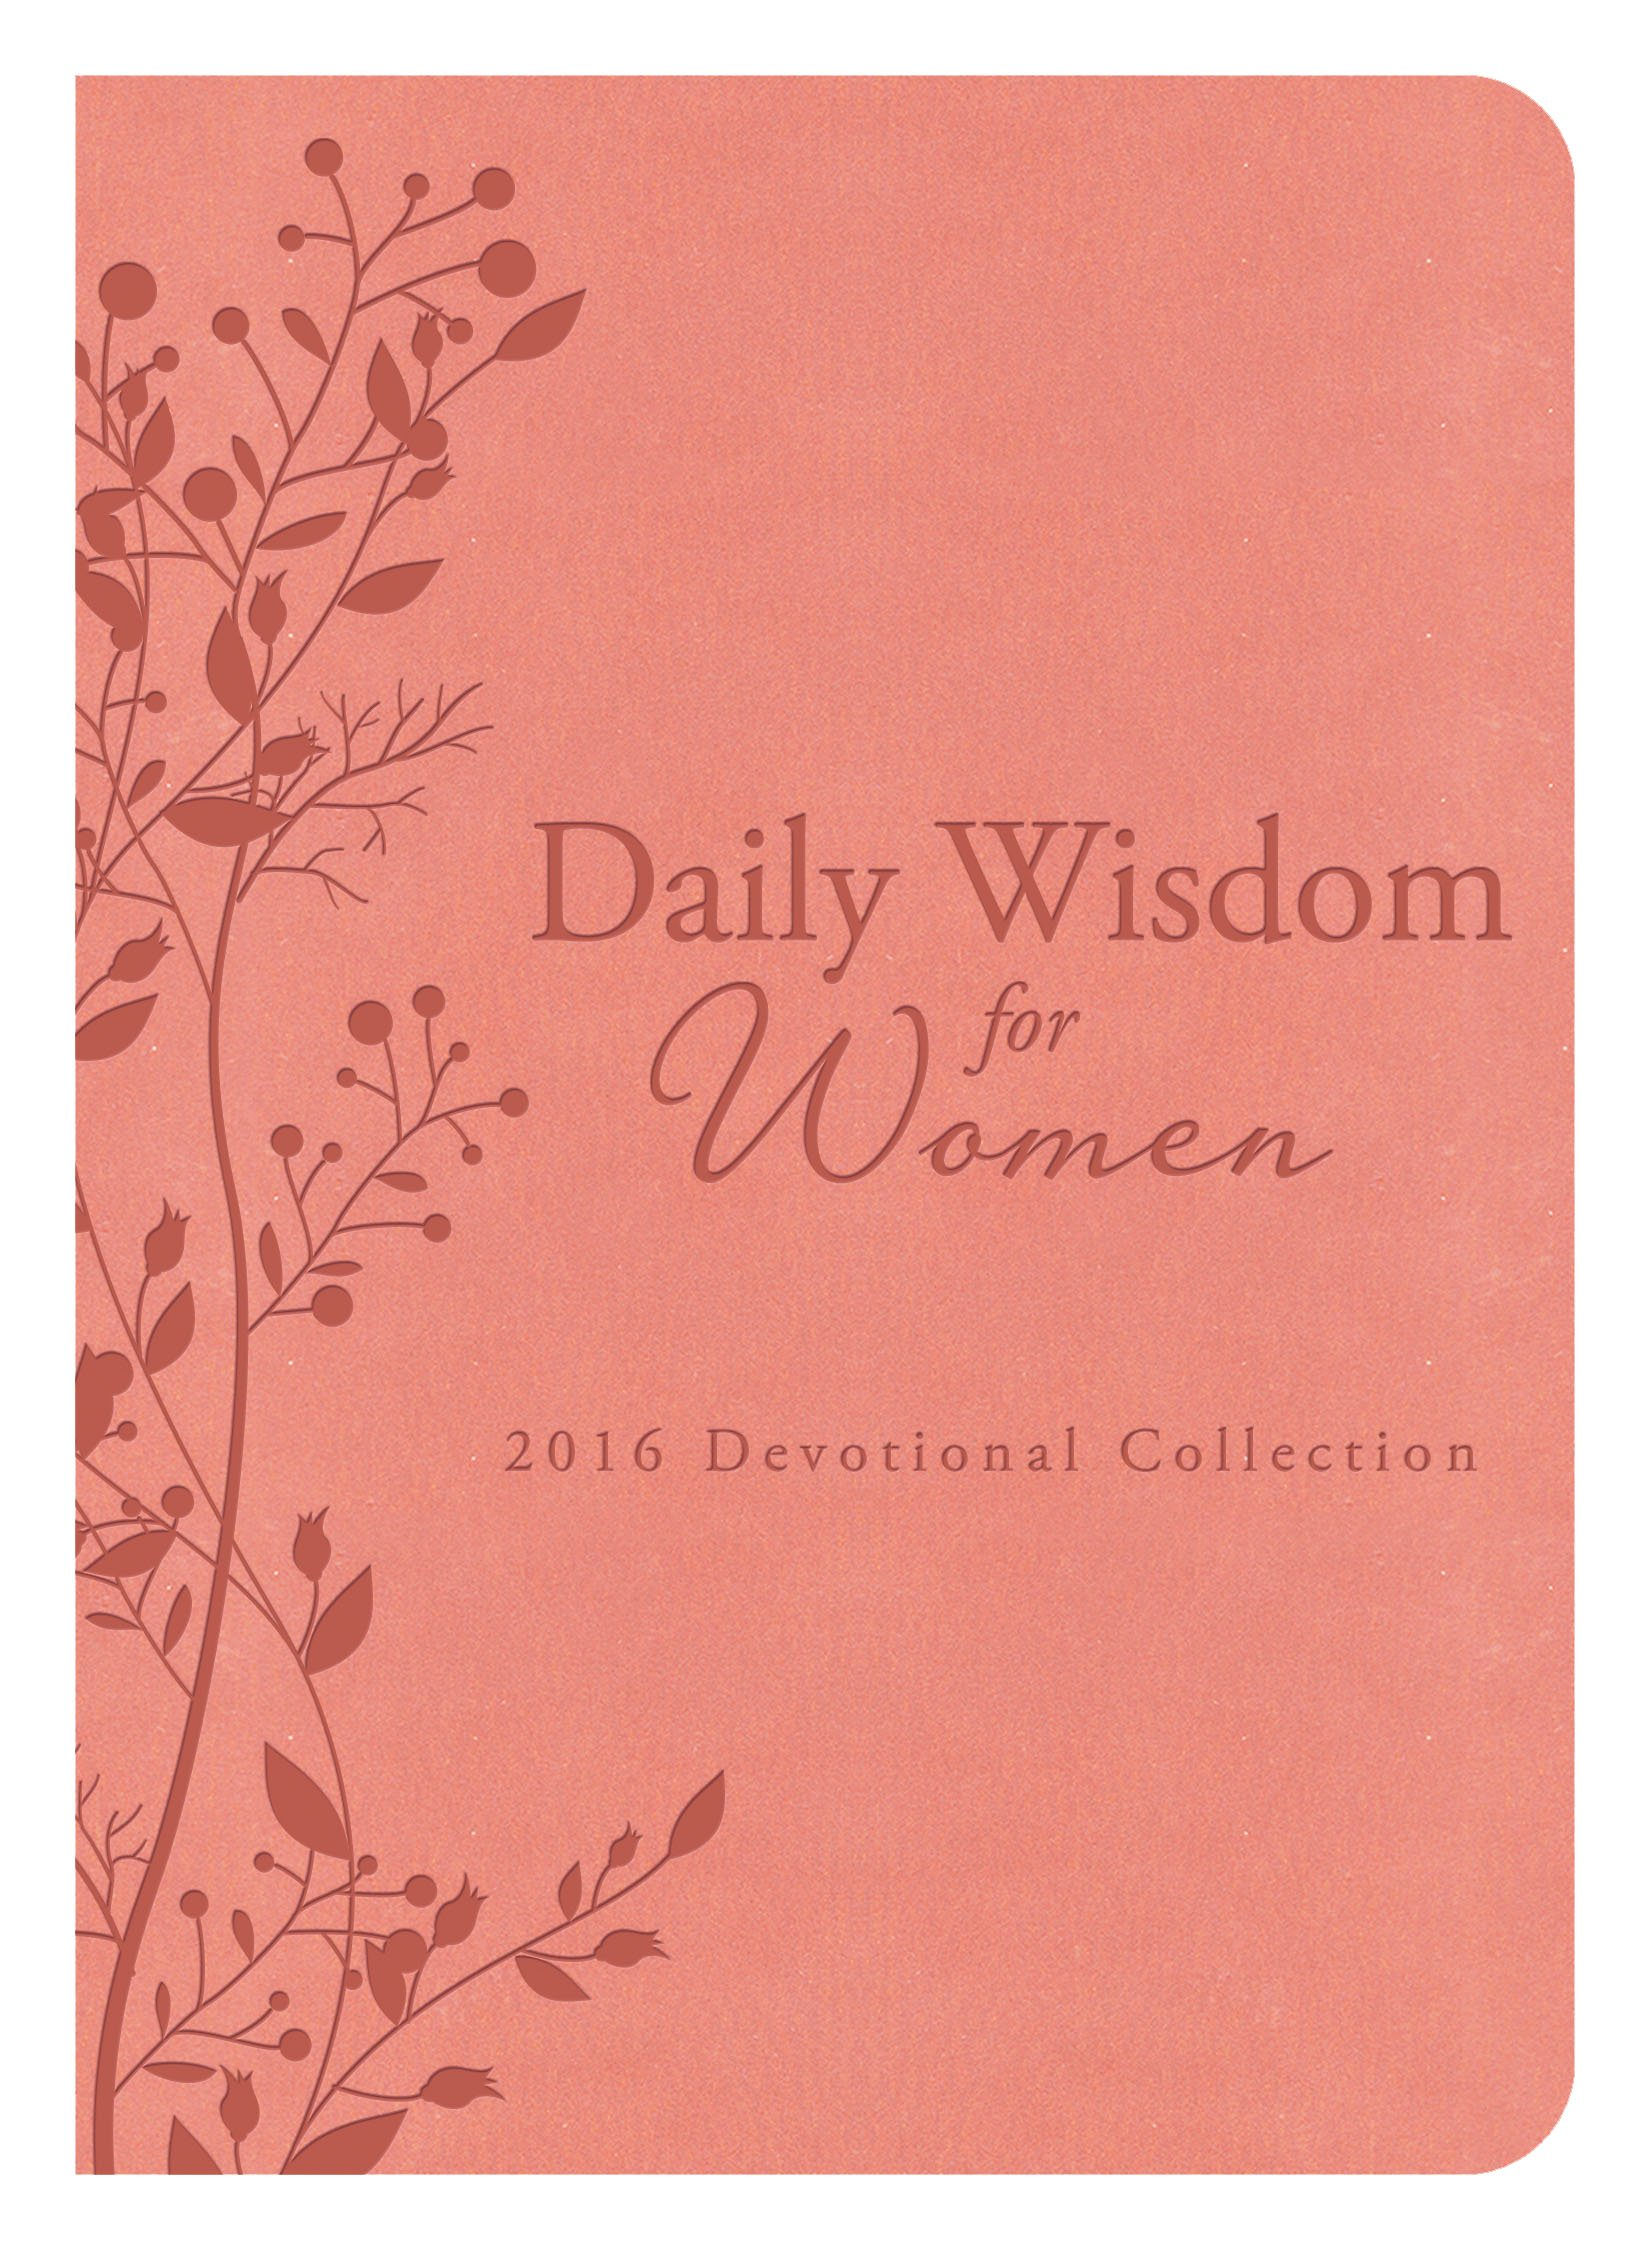 Daily Wisdom for Women 2016 Devotional Collection ebook